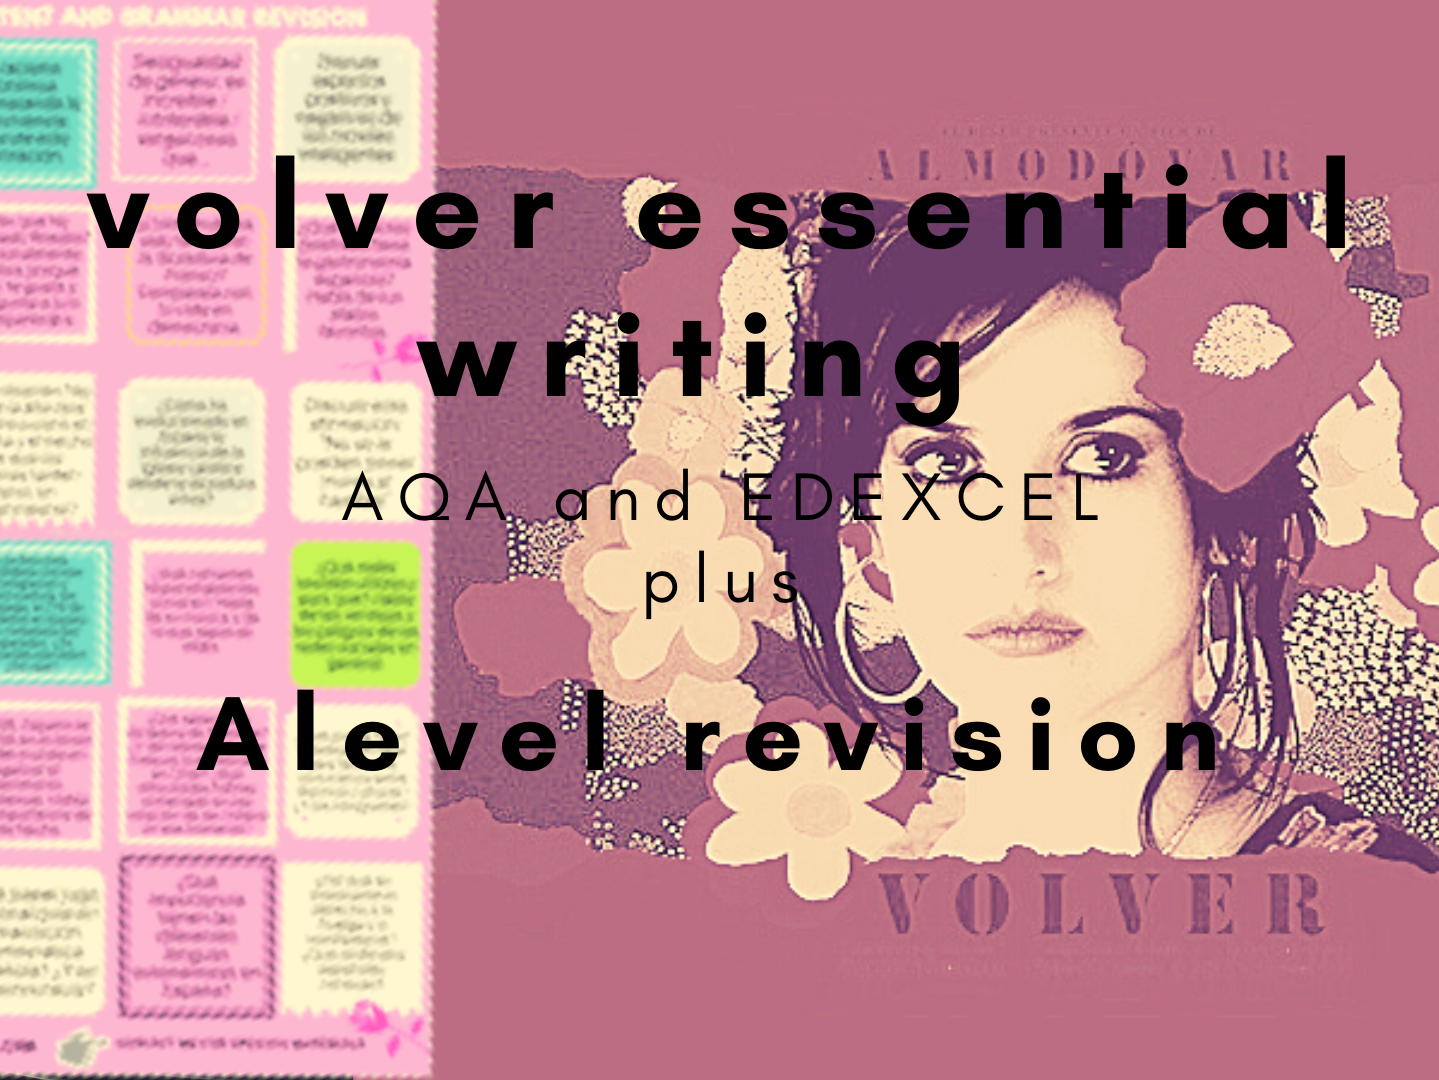 Volver all resources & A level revision